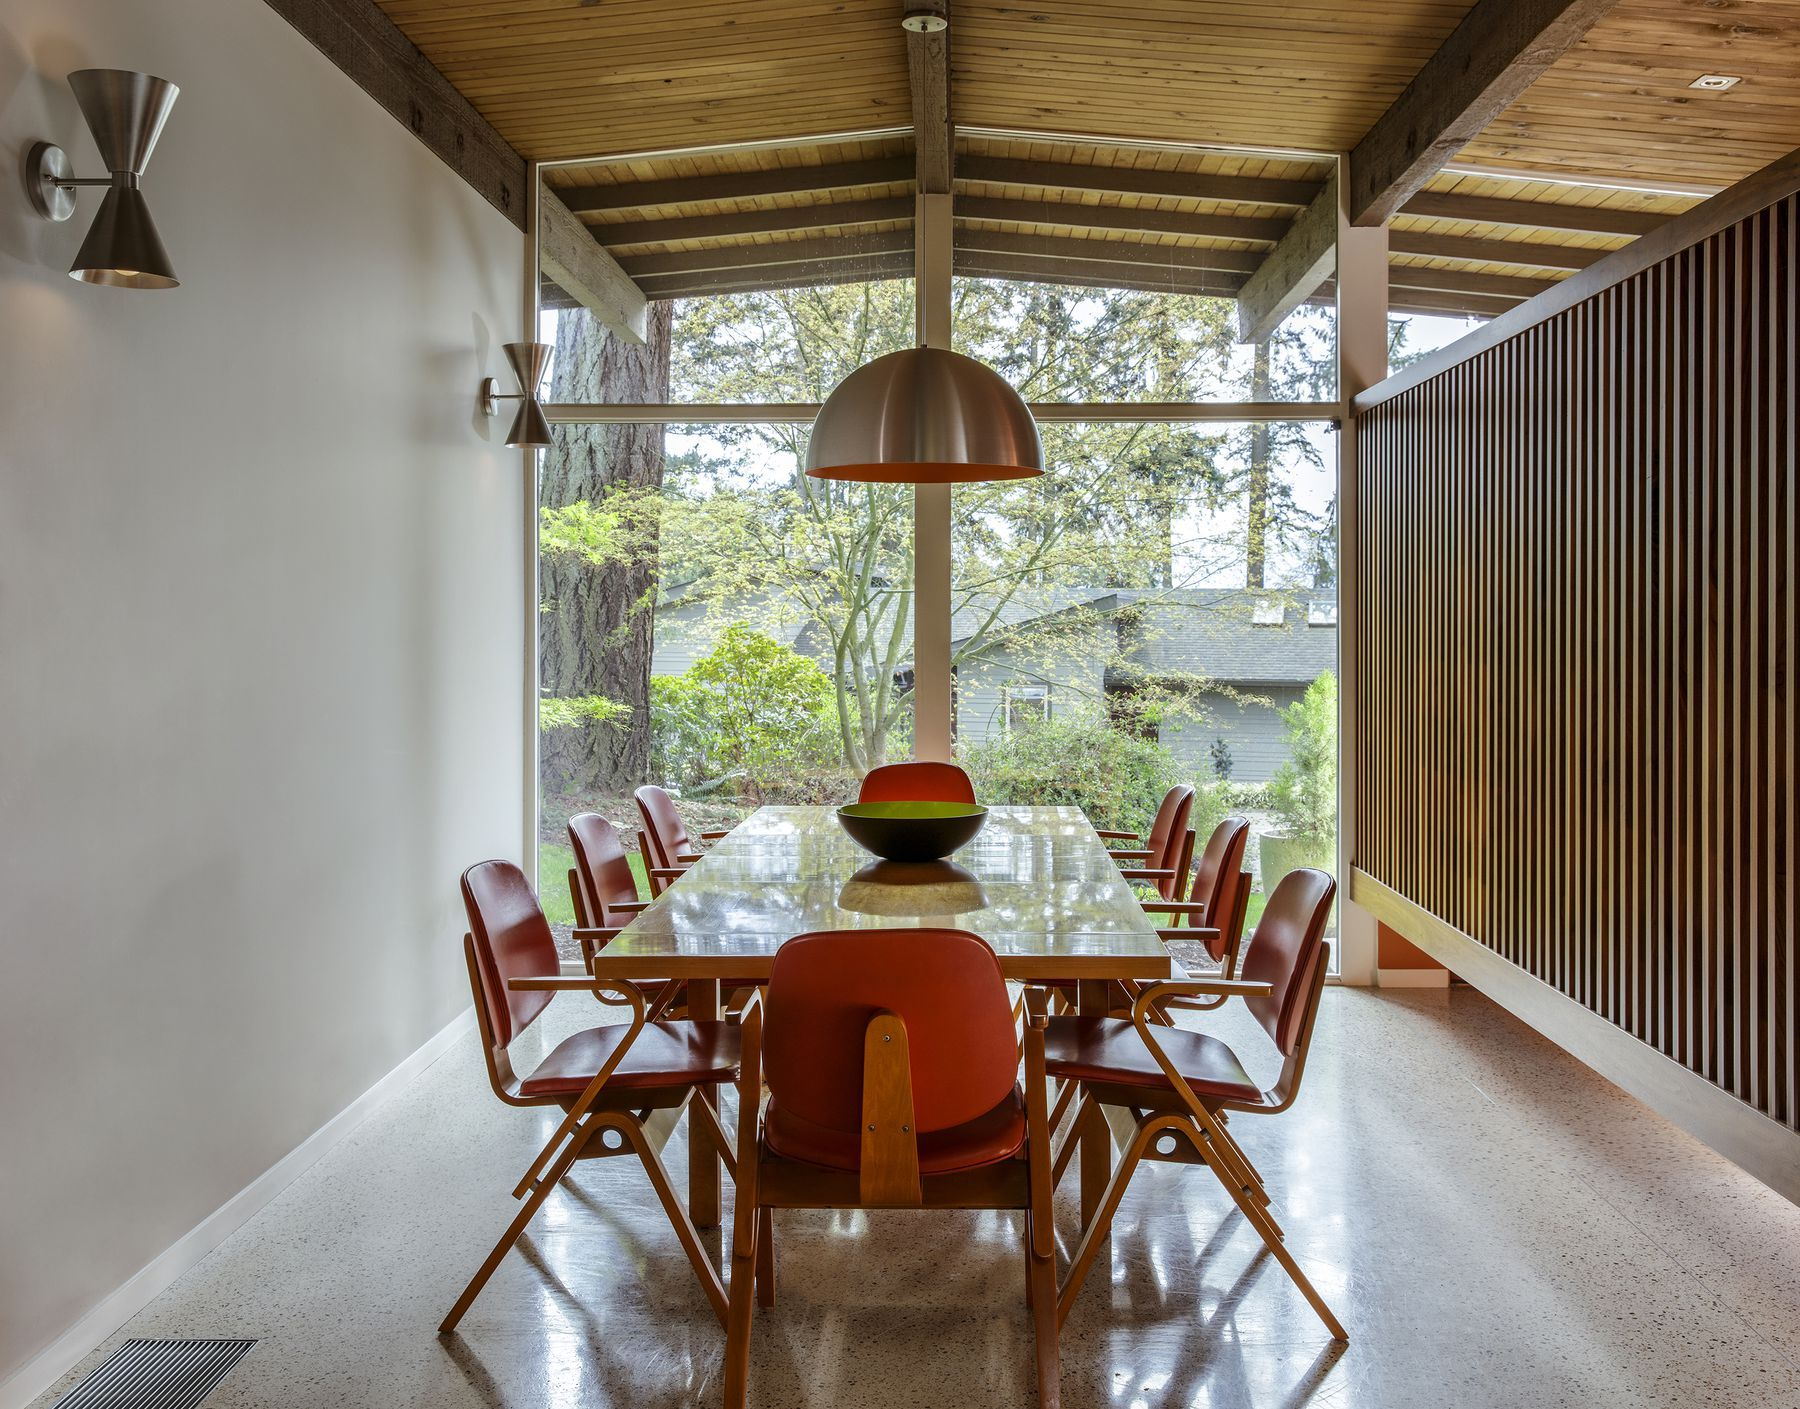 Remaking midcentury modern in portland modern dining chairs